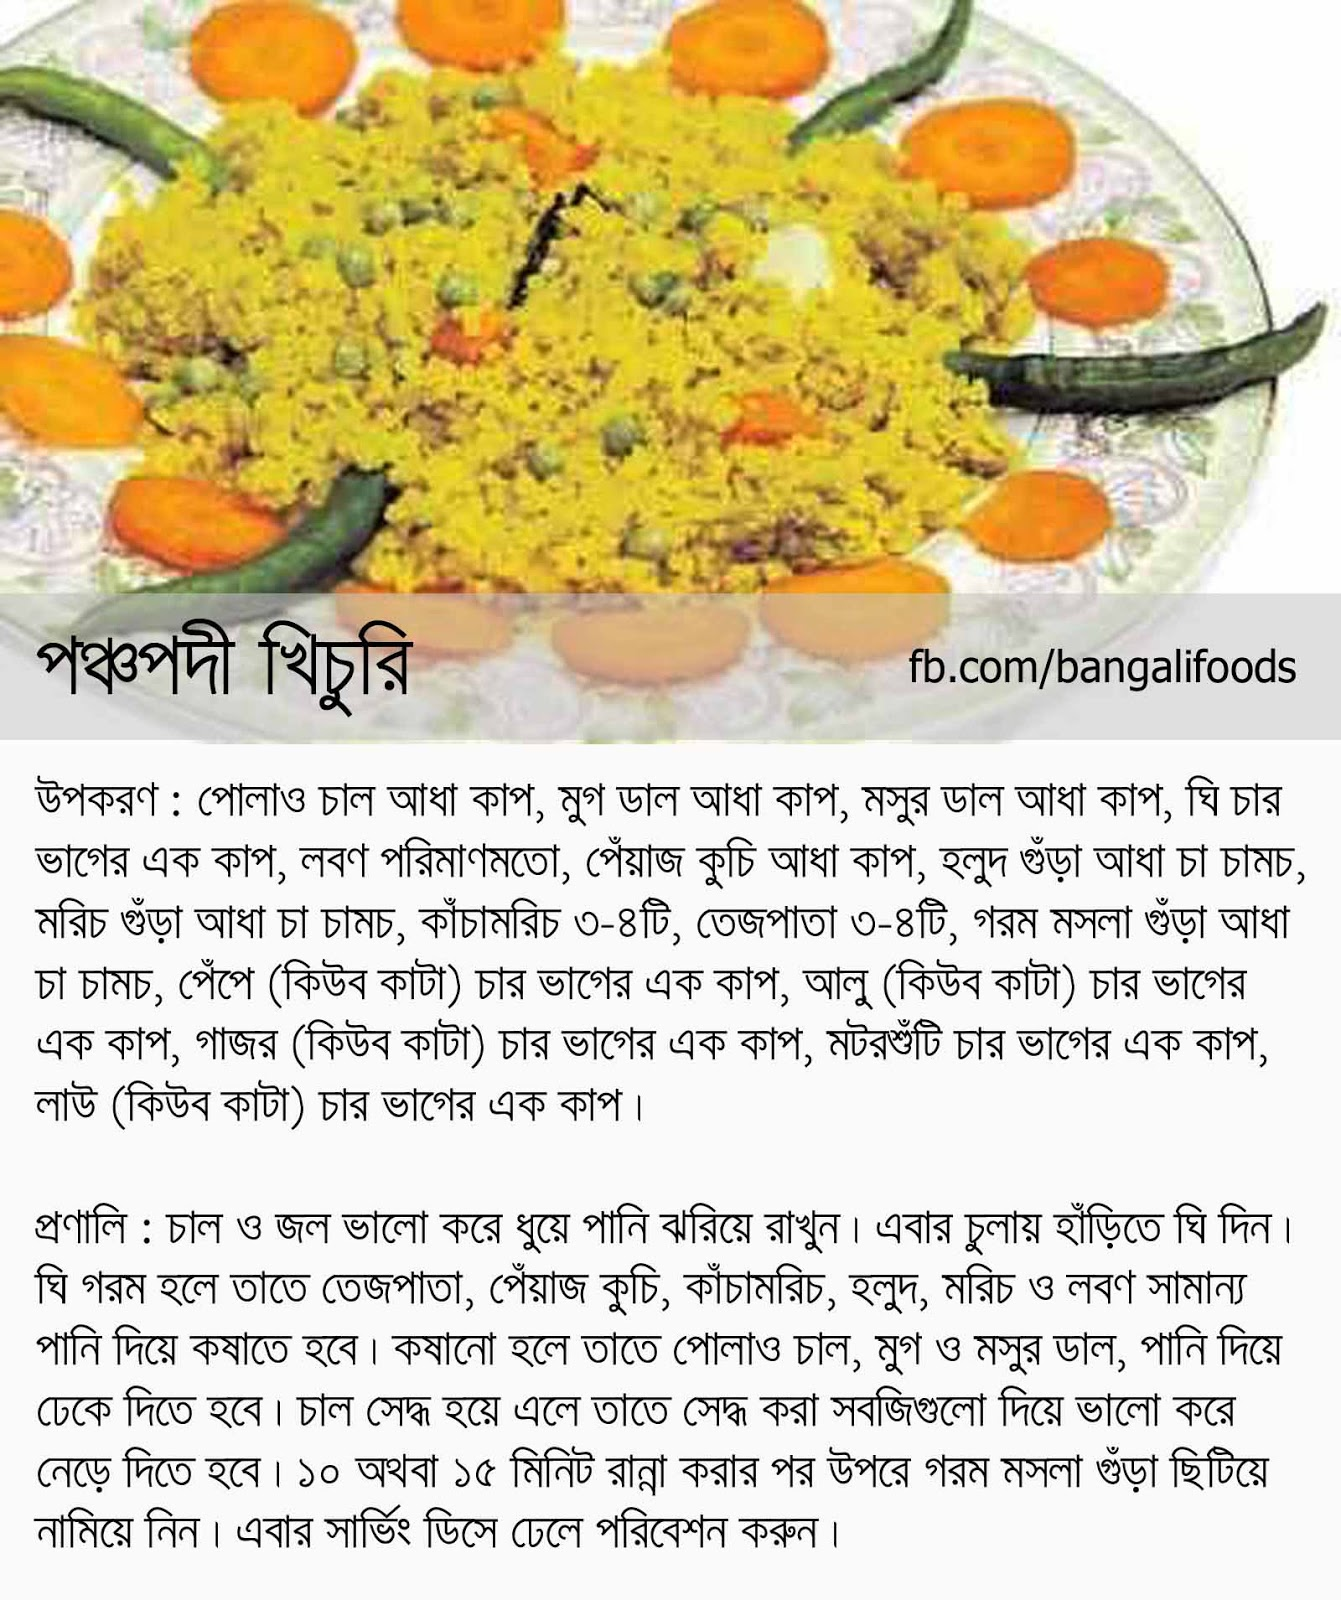 Bangali foods some khichuri recipes in bangla ponchopodi khichuri forumfinder Images